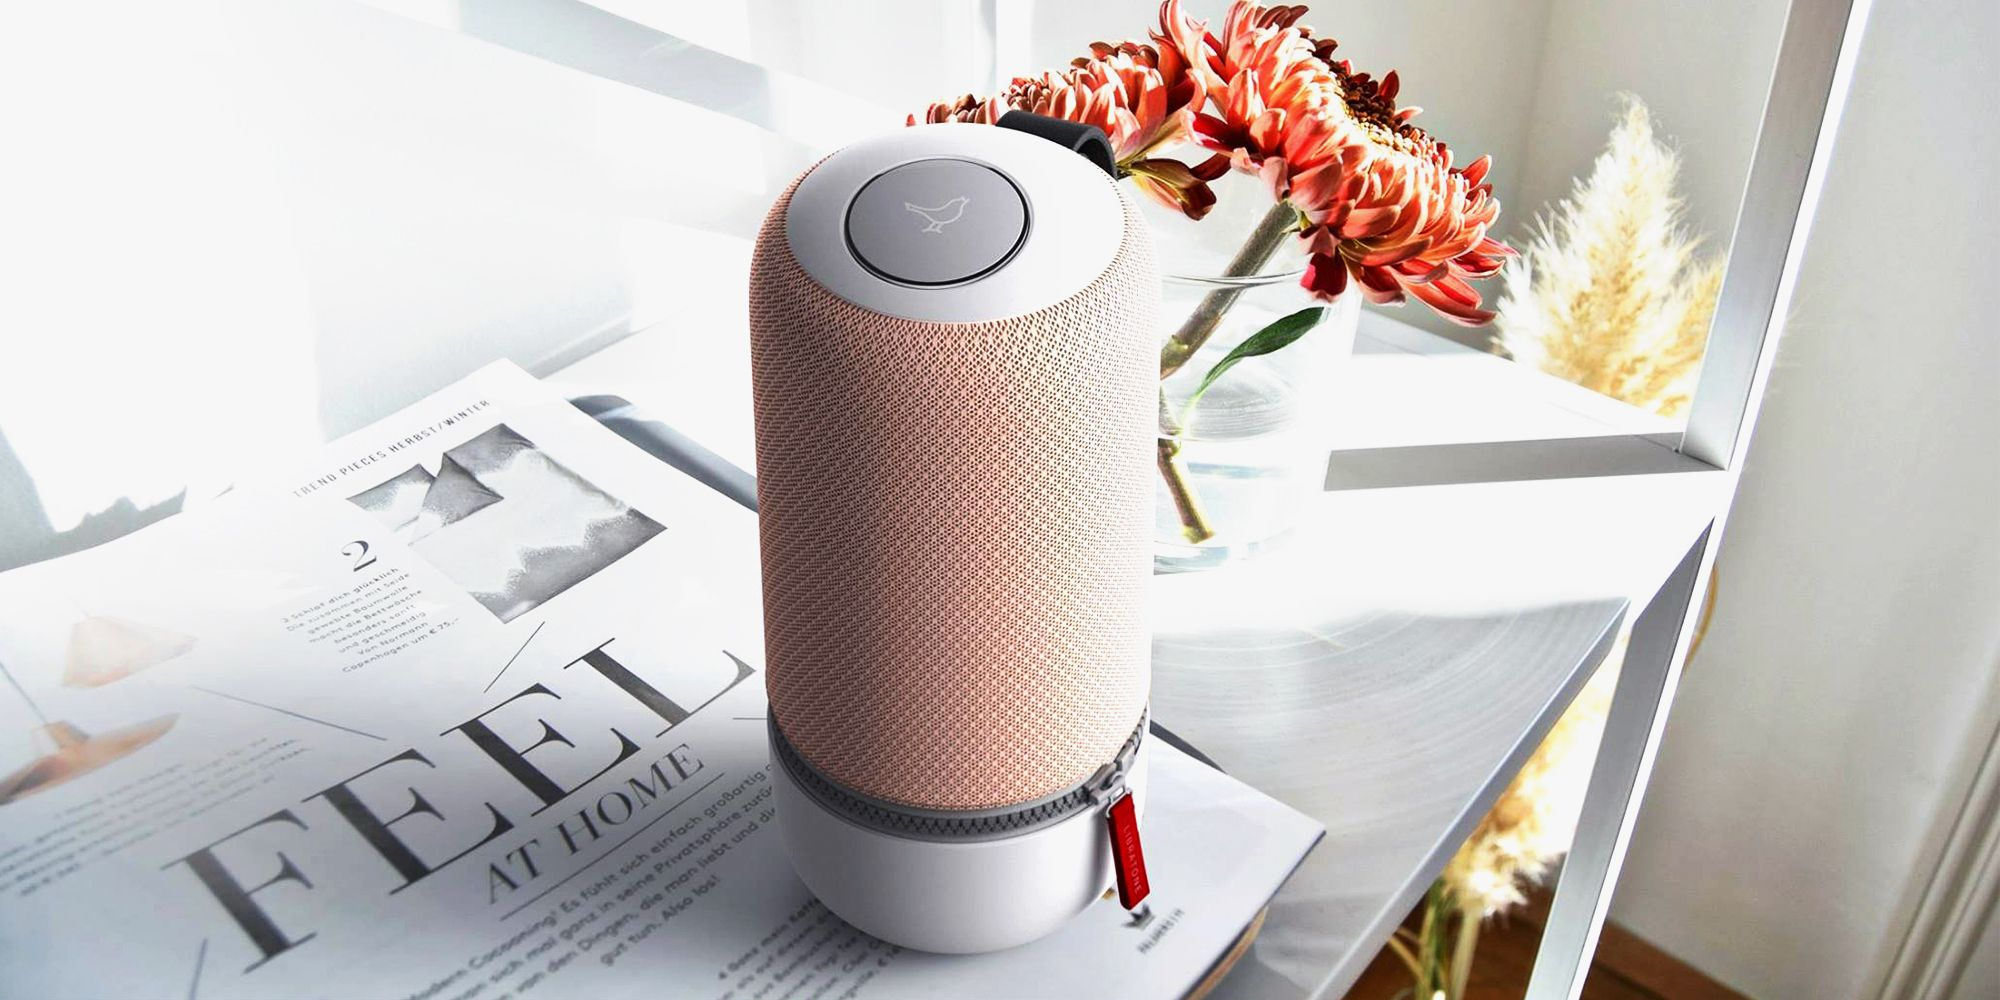 libratone airplay speakers best 2018